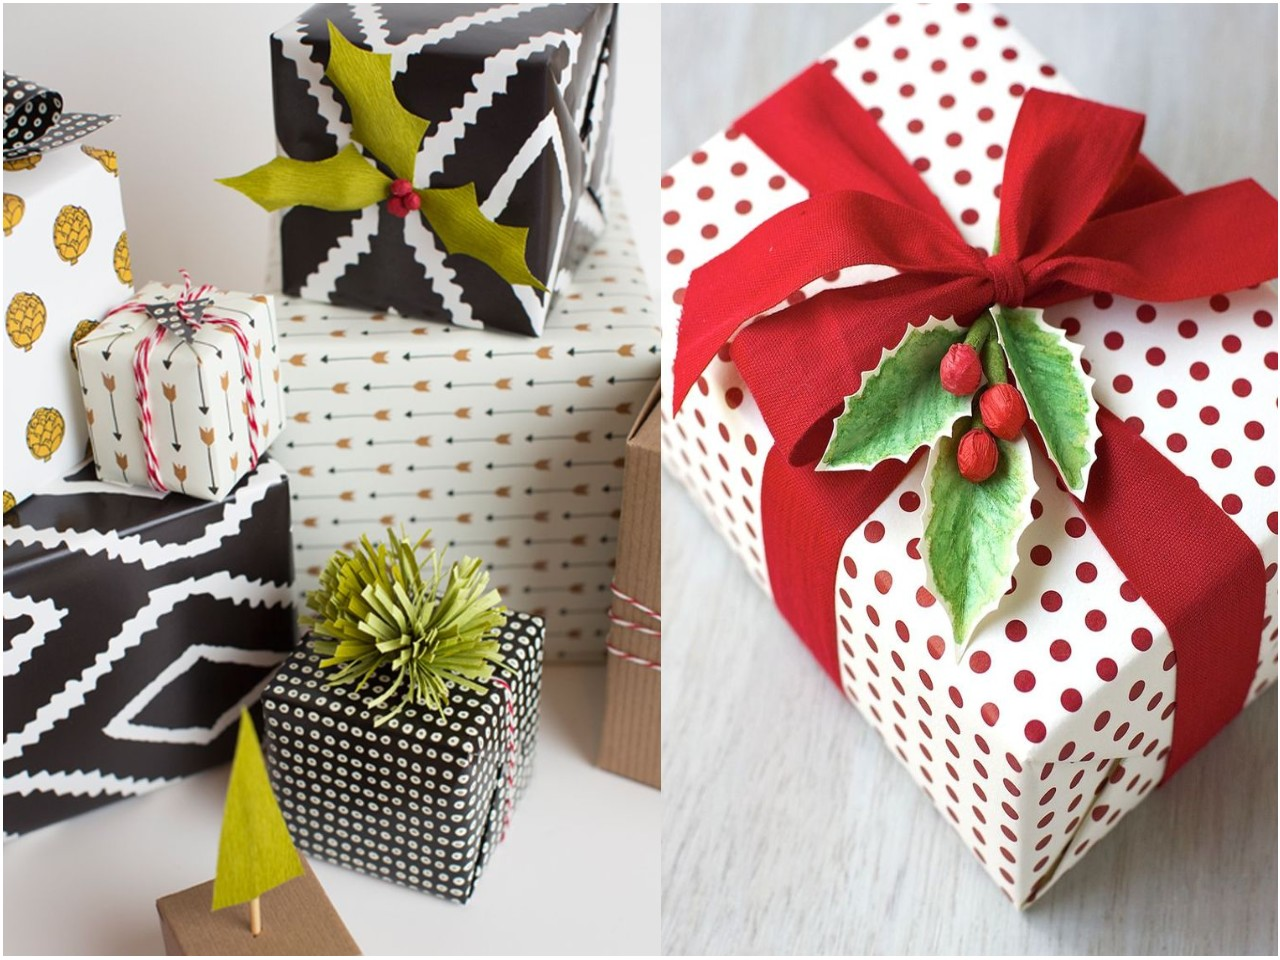 7 ideas originales para envolver regalos for Envolver regalos originales